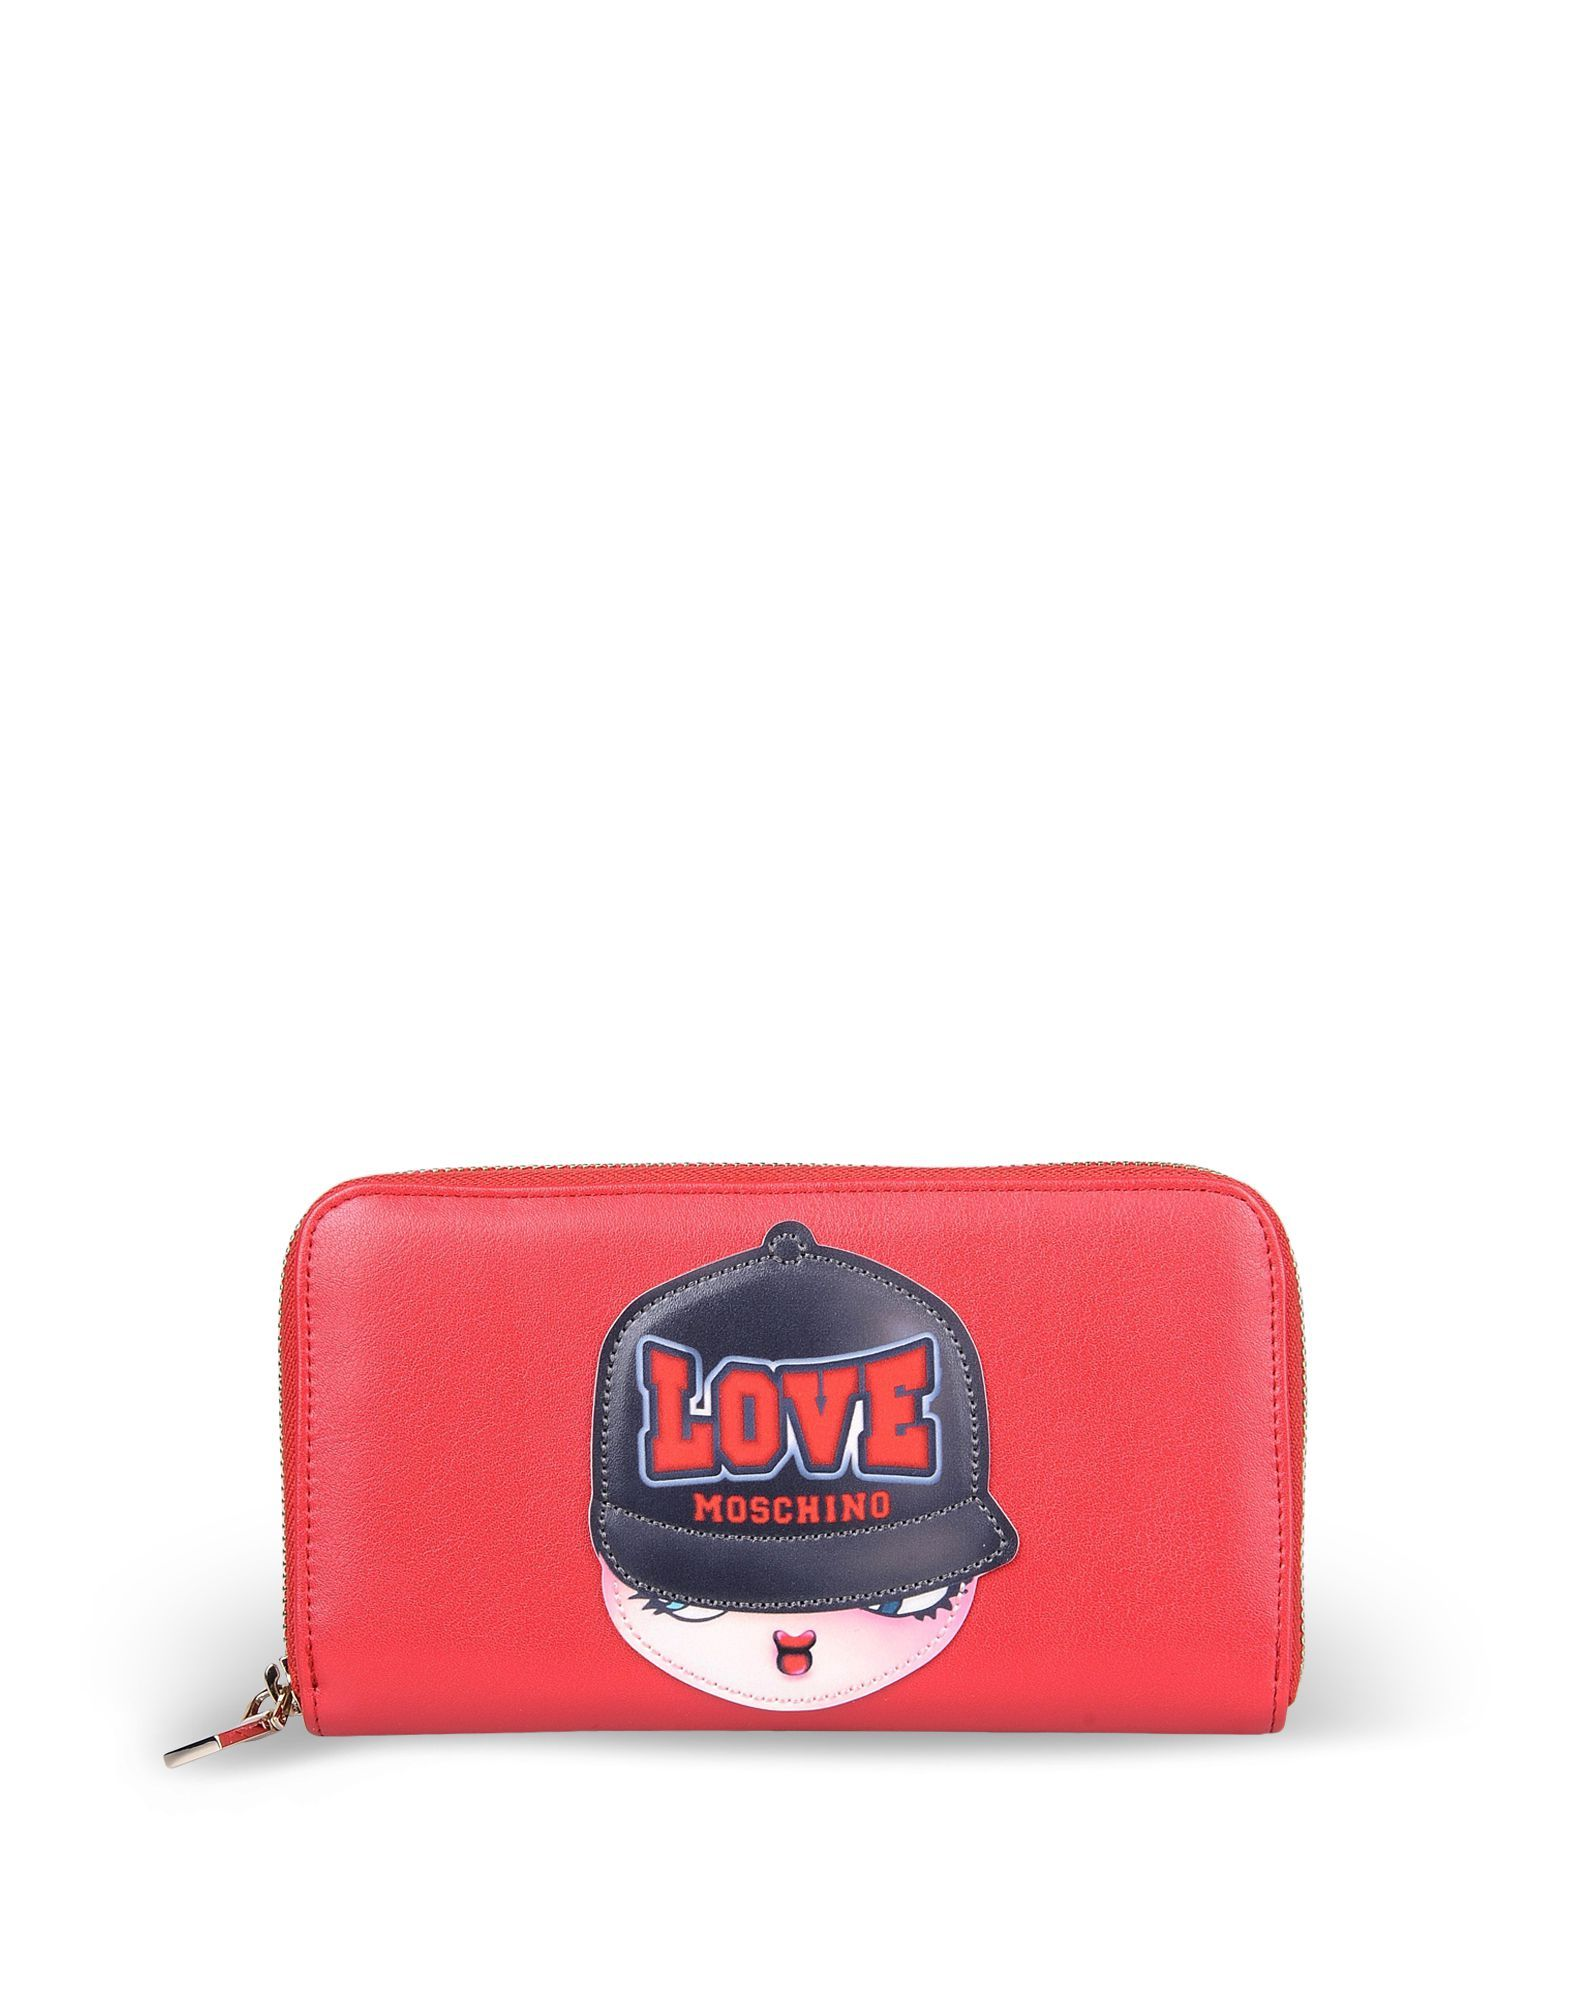 f89d8dff74 Wallet Women - Moschino Online Store | Cool coin purses, wallets and ...